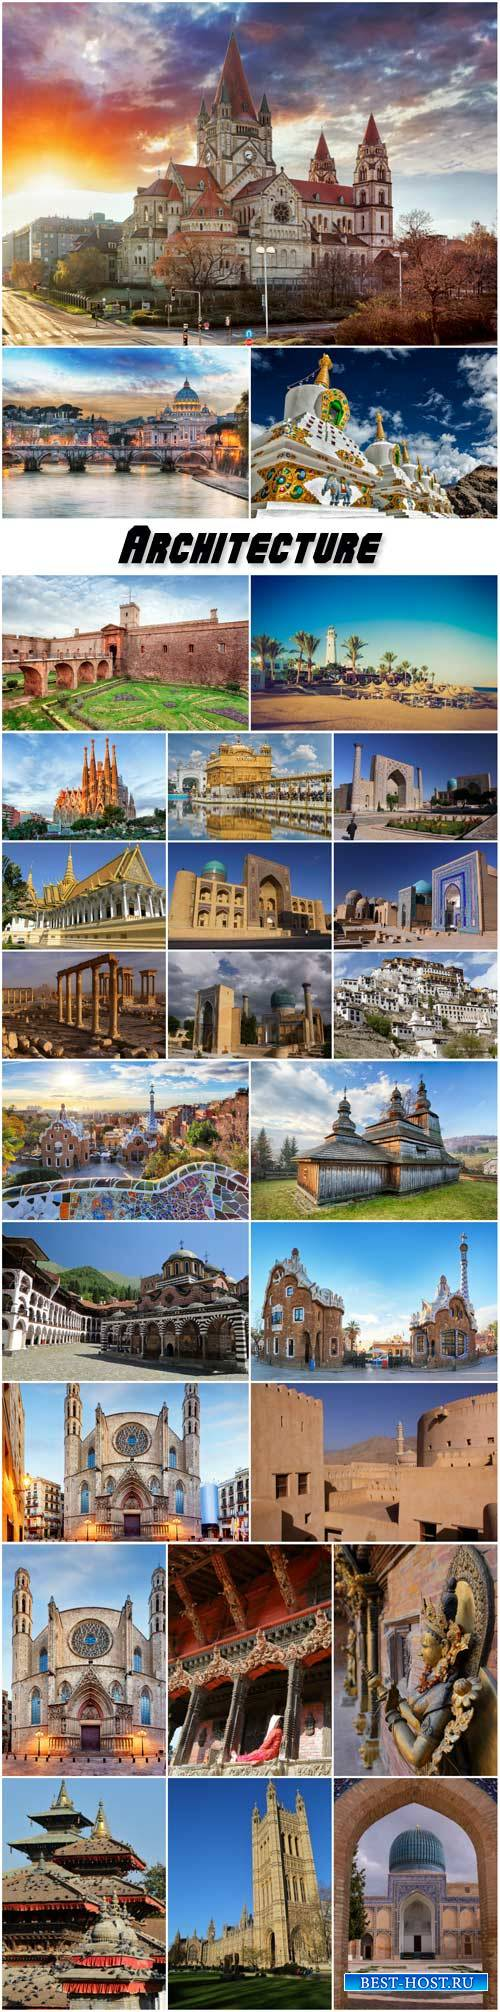 Architecture the various countries